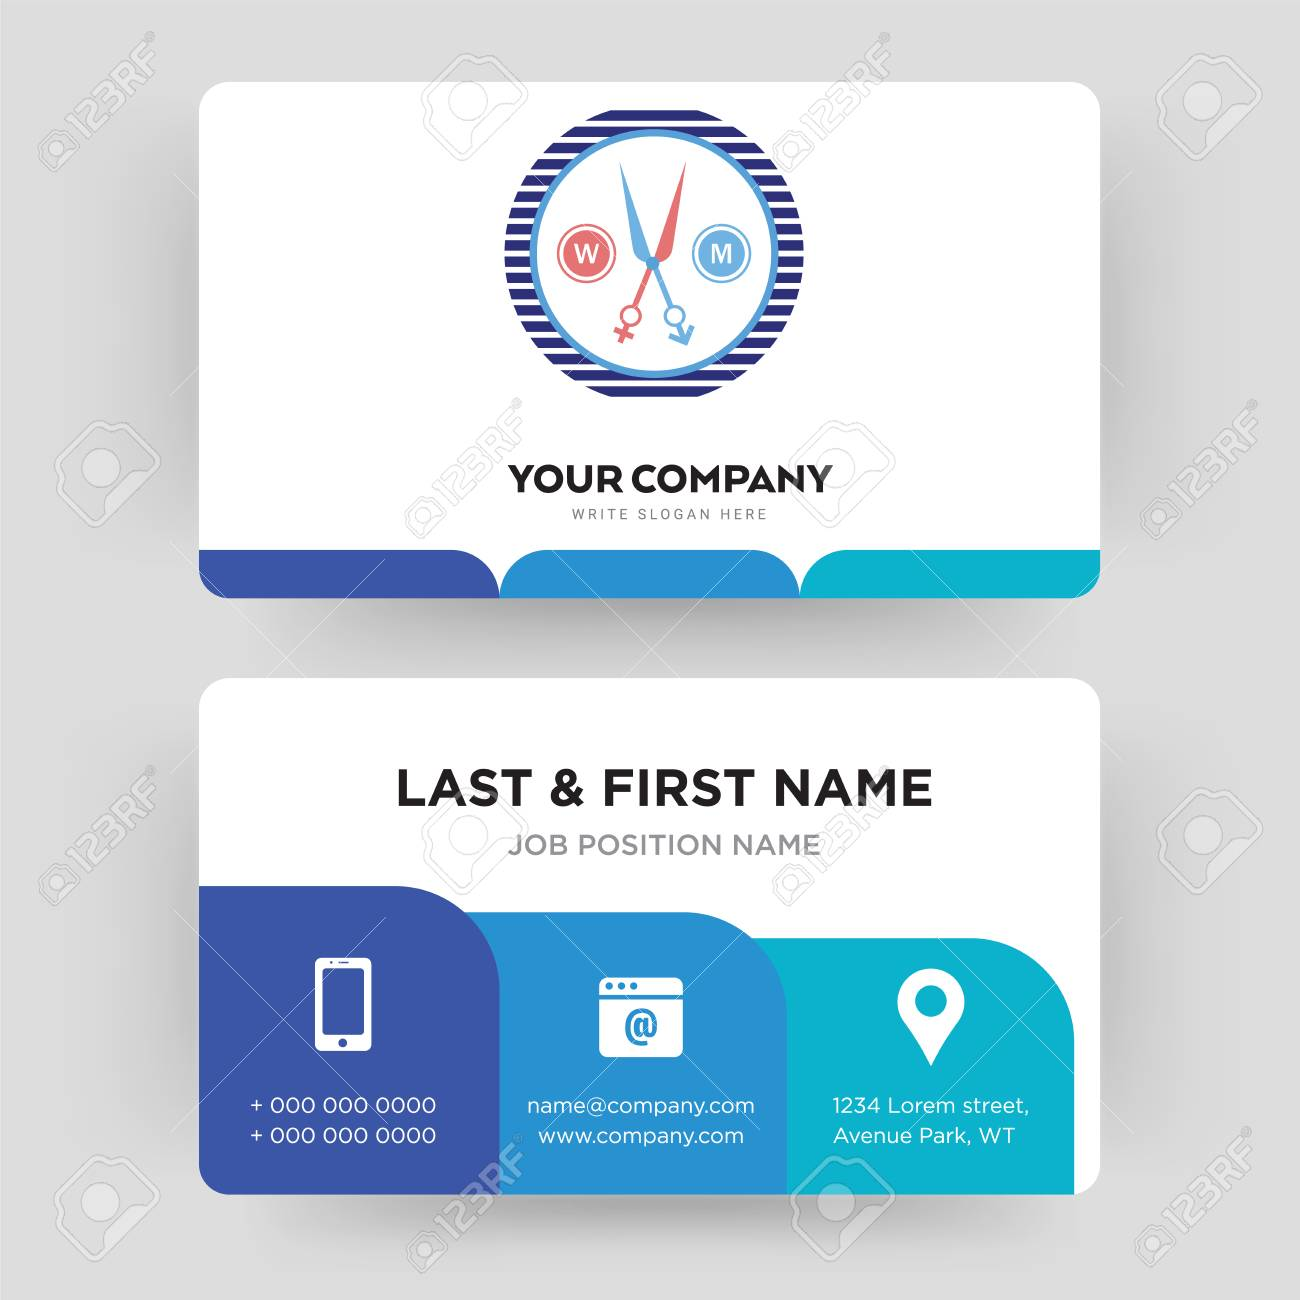 Unisex Salon Business Card Design Template Visiting For Your Royalty Free Cliparts Vectors And Stock Illustration Image 102279810